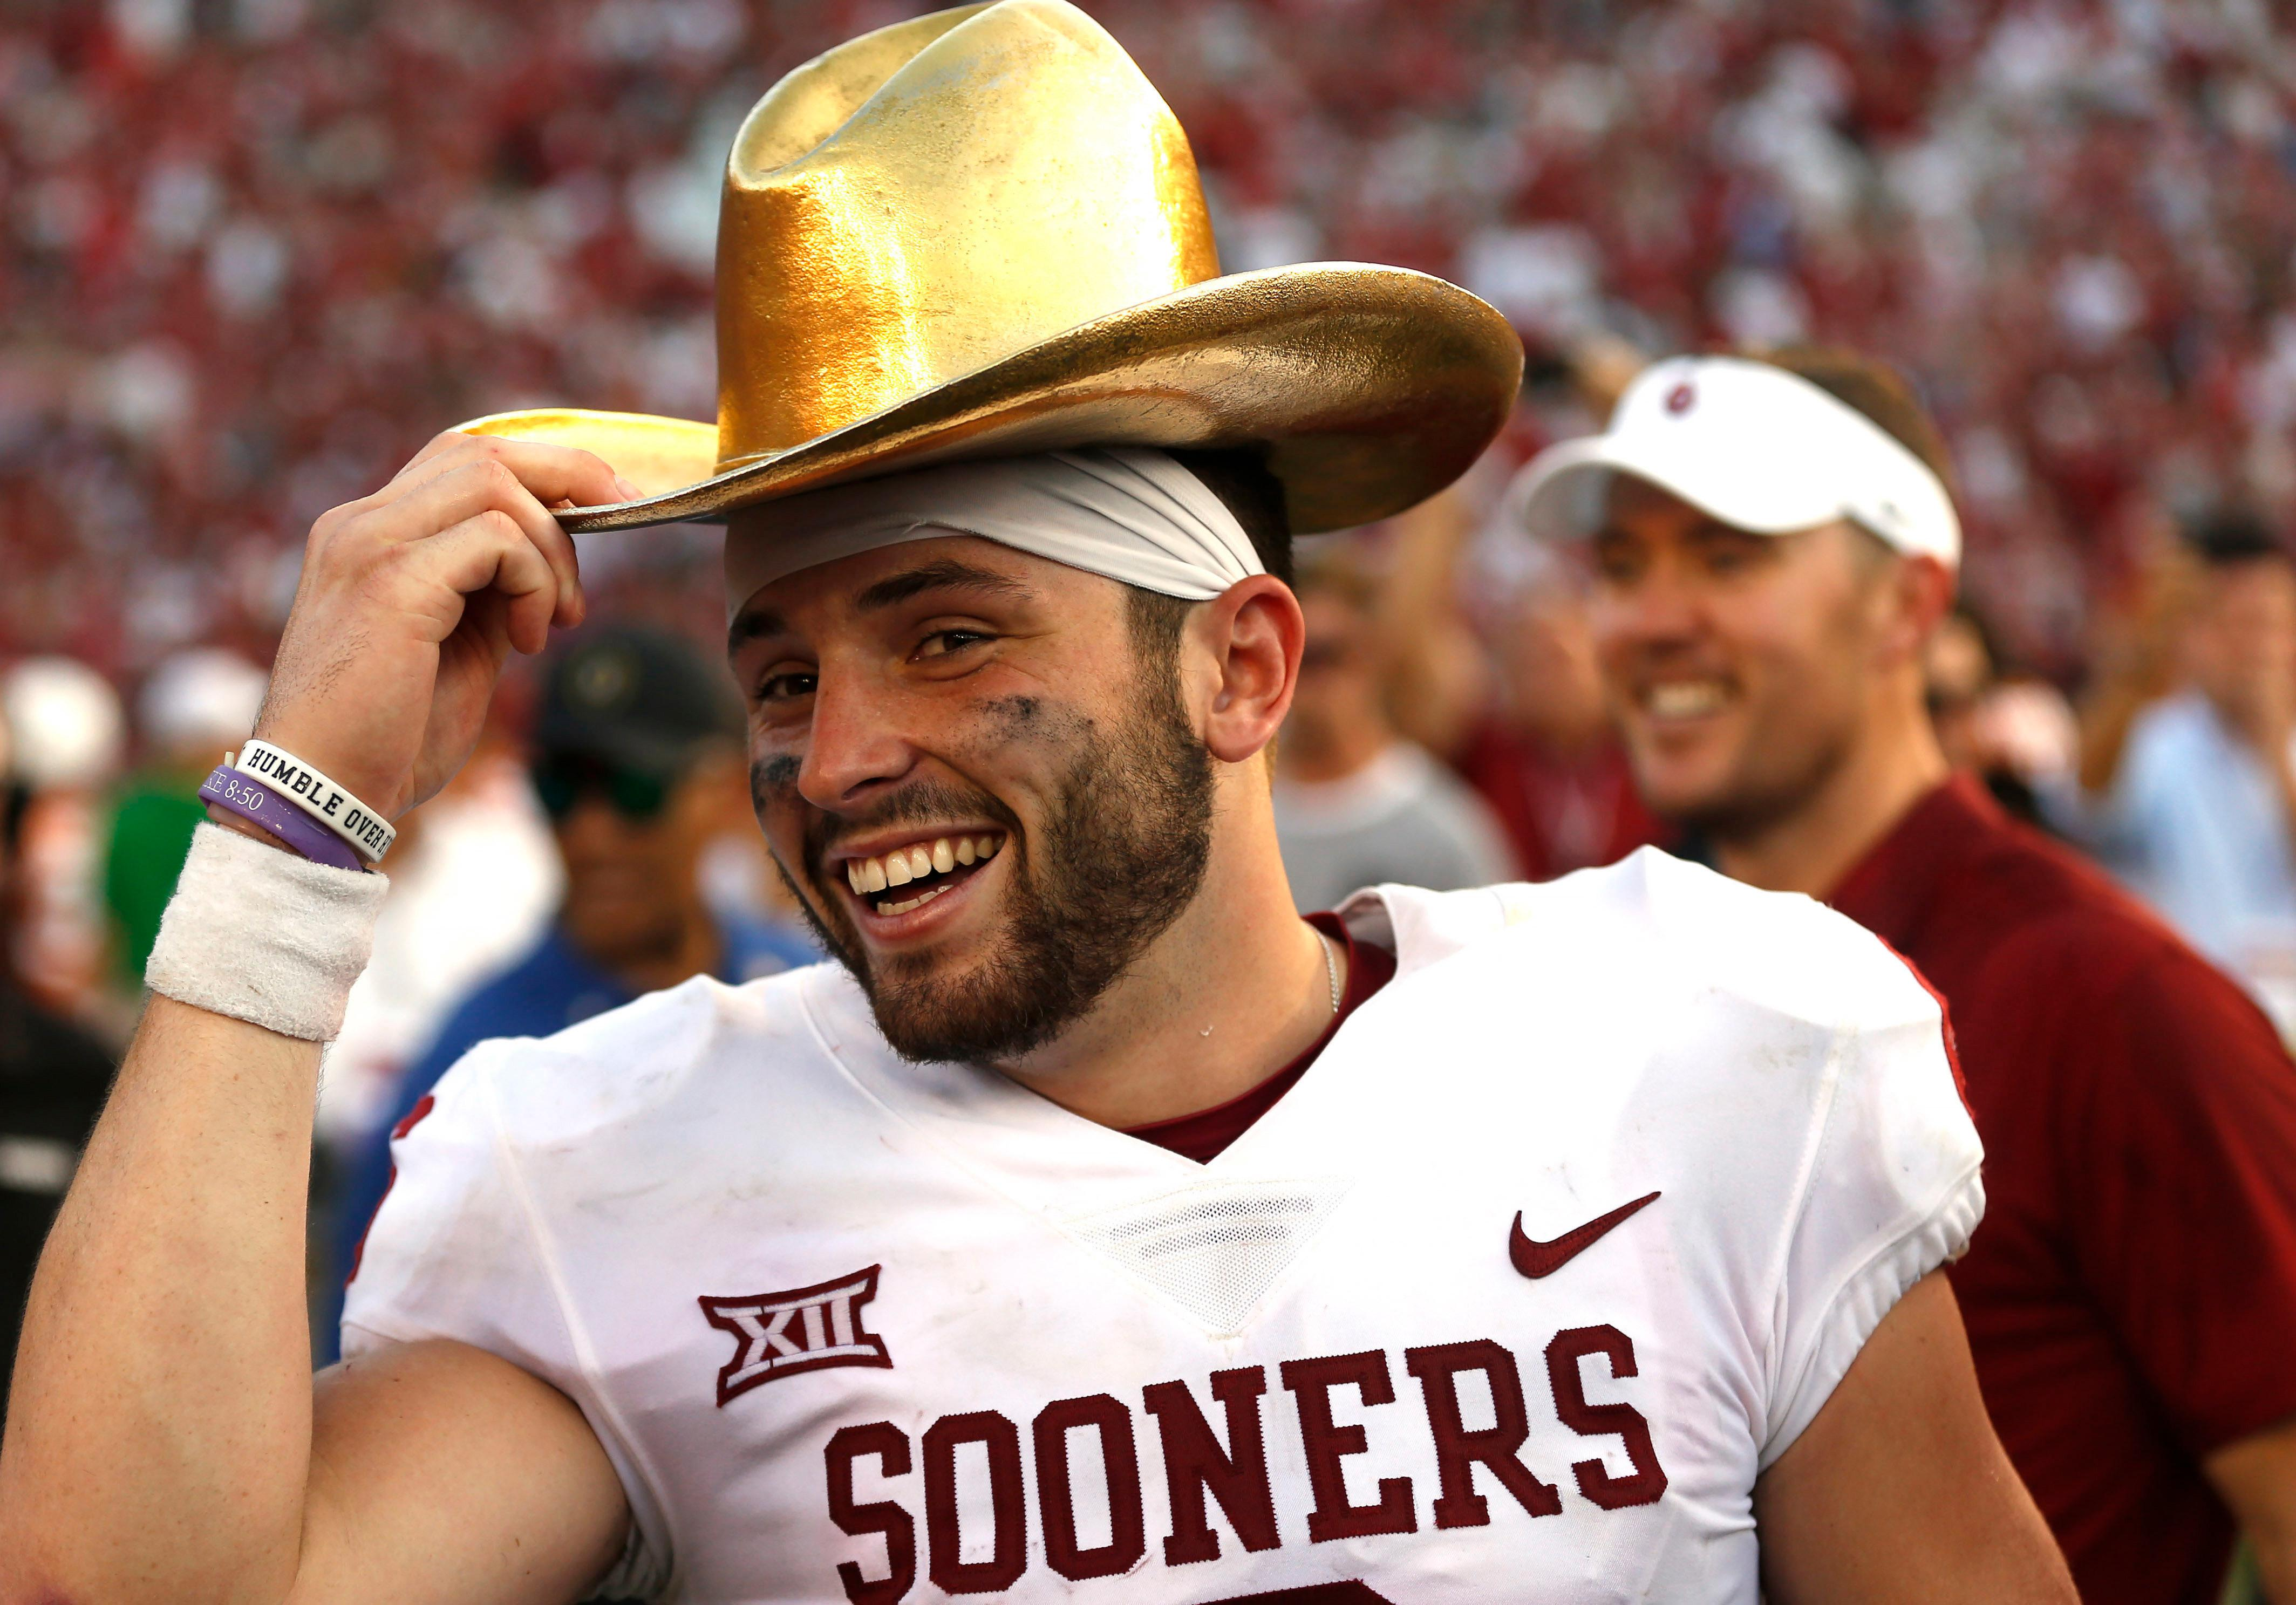 FILE - In this Oct. 14, 2017, file photo, Oklahoma quarterback Baker Mayfield (6) celebrates with the Golden Hat Trophy following the team's 29-24 win over Texas in an NCAA college football game in Dallas. Baker Mayfield is the AP player of the year, becoming the fourth Oklahoma quarterback to win the award since it was established in 1998.  (AP Photo/Ron Jenkins, File)